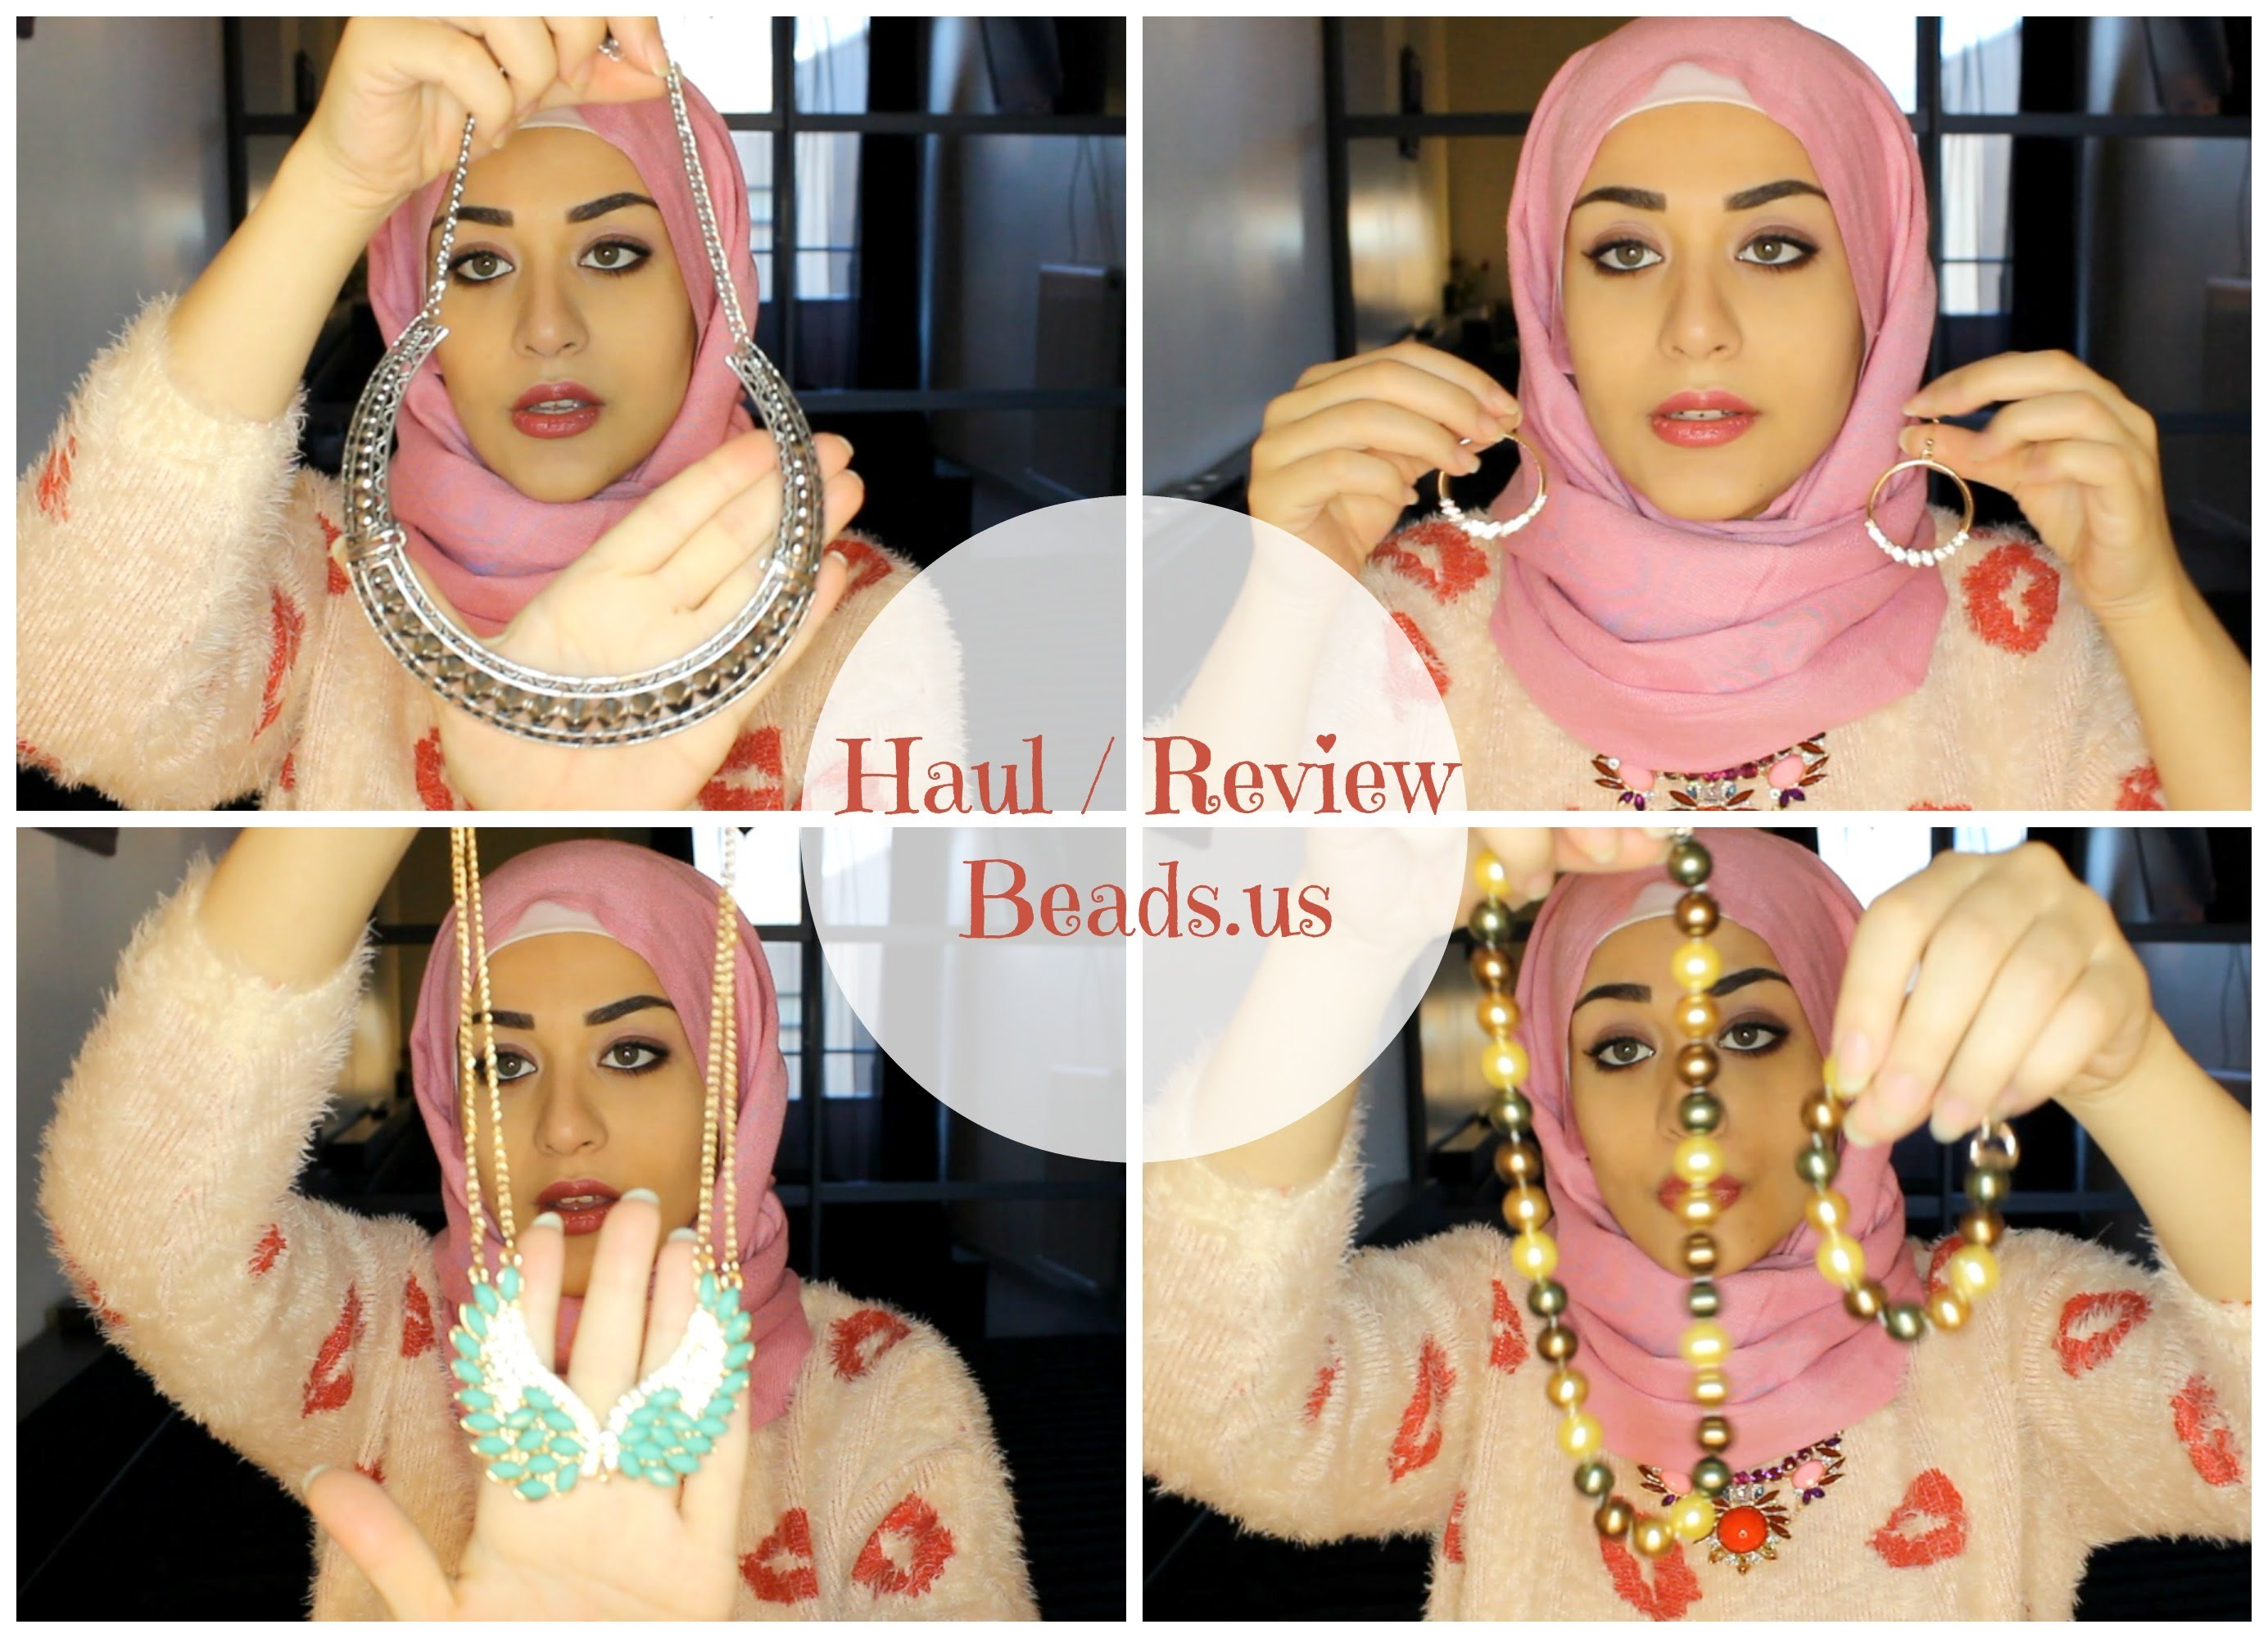 Haul. Review - Haul. Revue : Beads.us